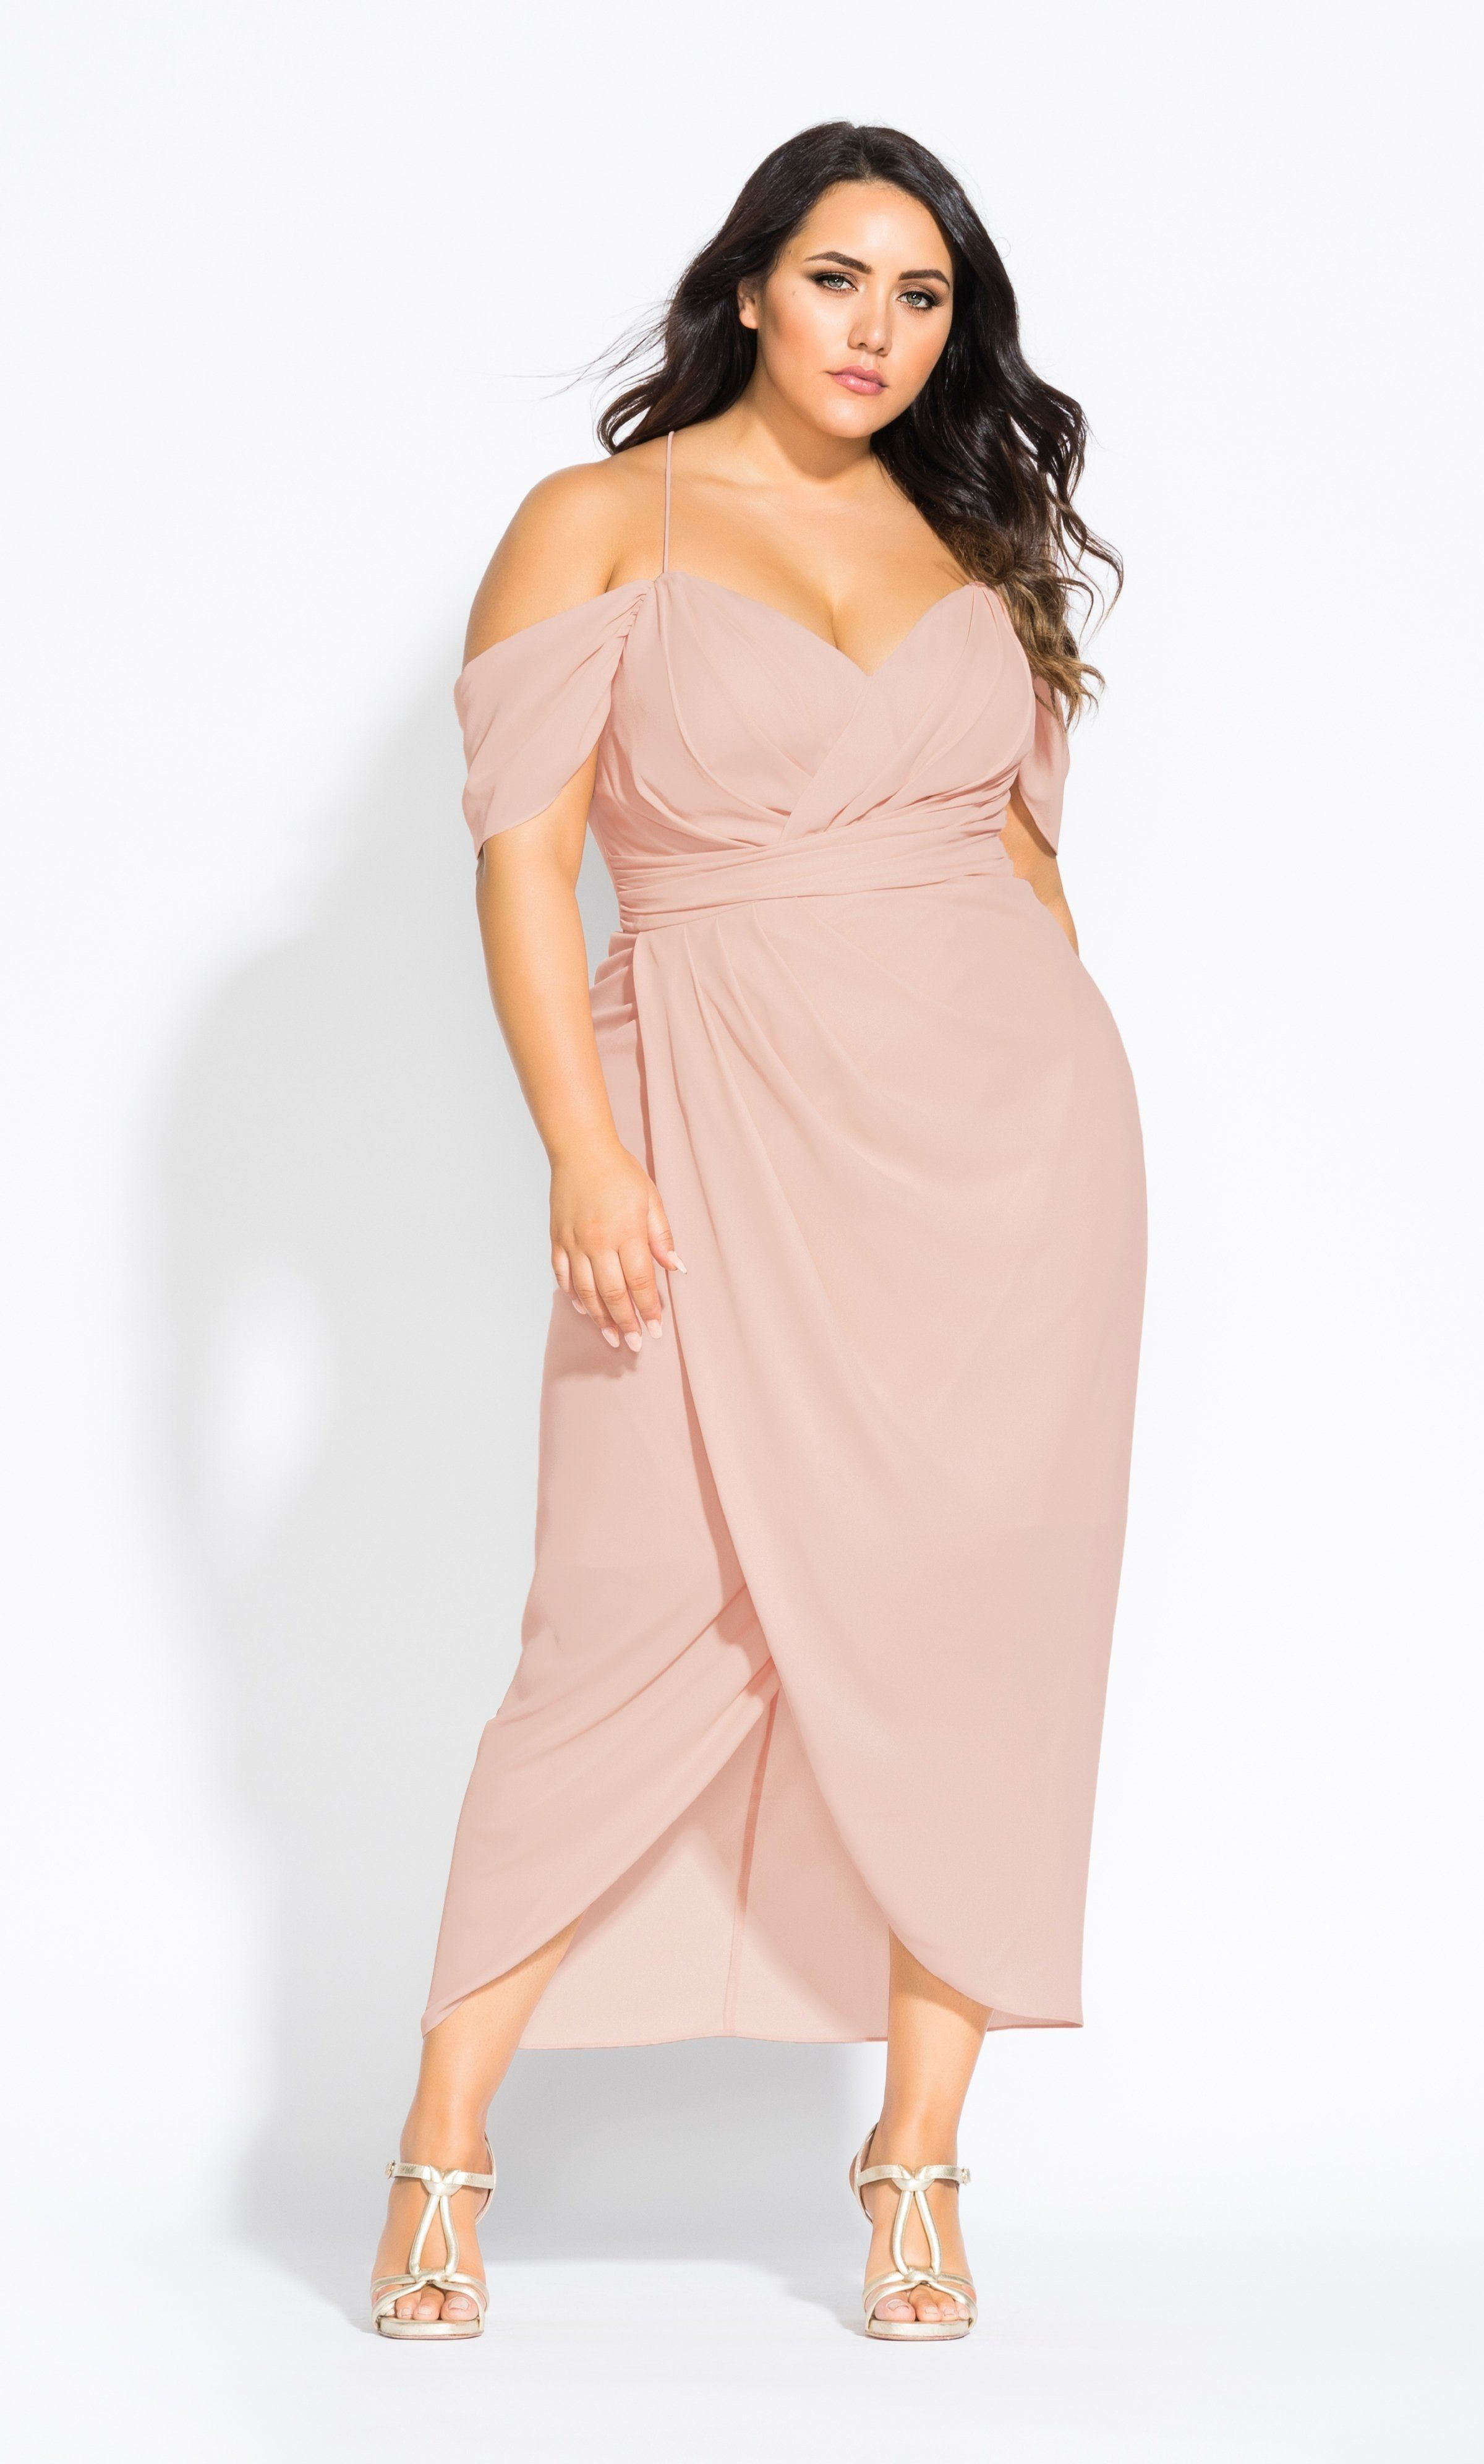 Entwine Maxi Dress - pink | Bridesmaid dresses plus size ...